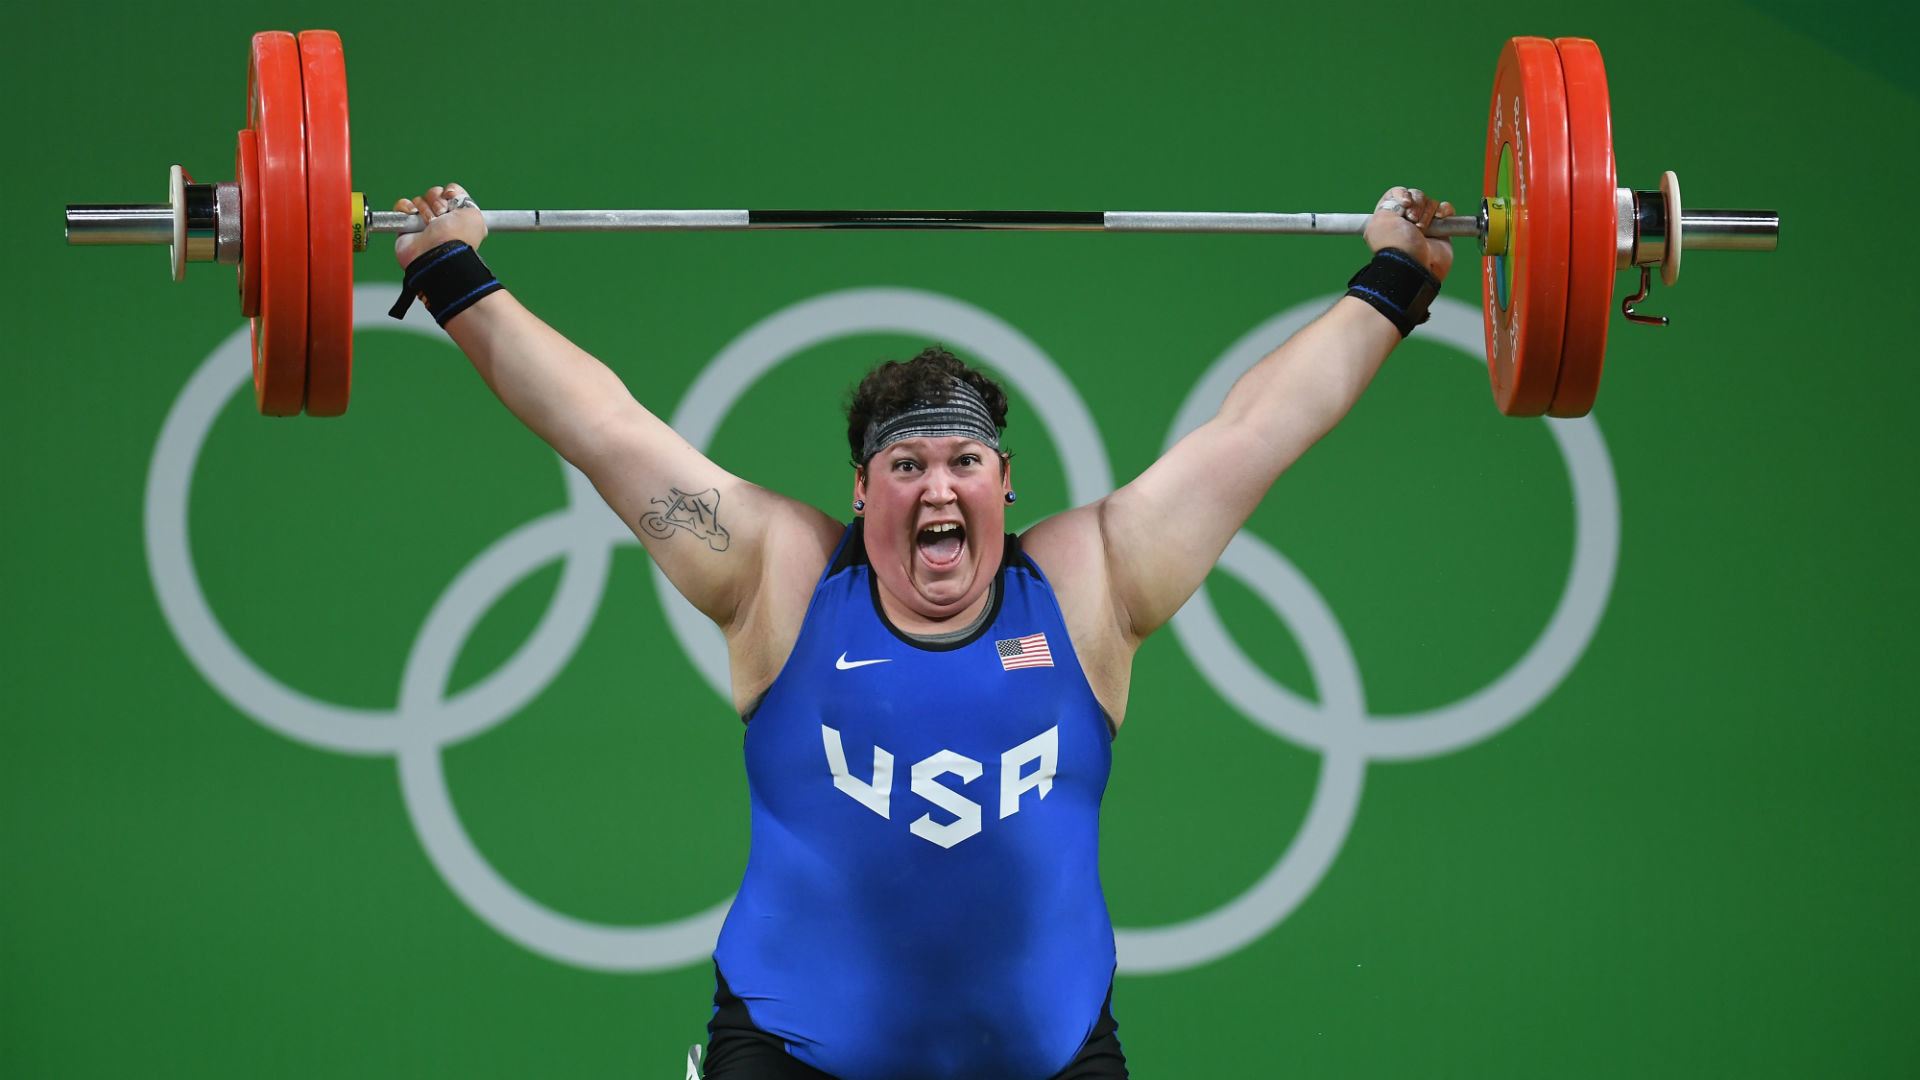 Rio Olympics 2016: Sarah Robles wins rare U.S. weightlifting medal after  return from doping ban | Athletics | Sporting News